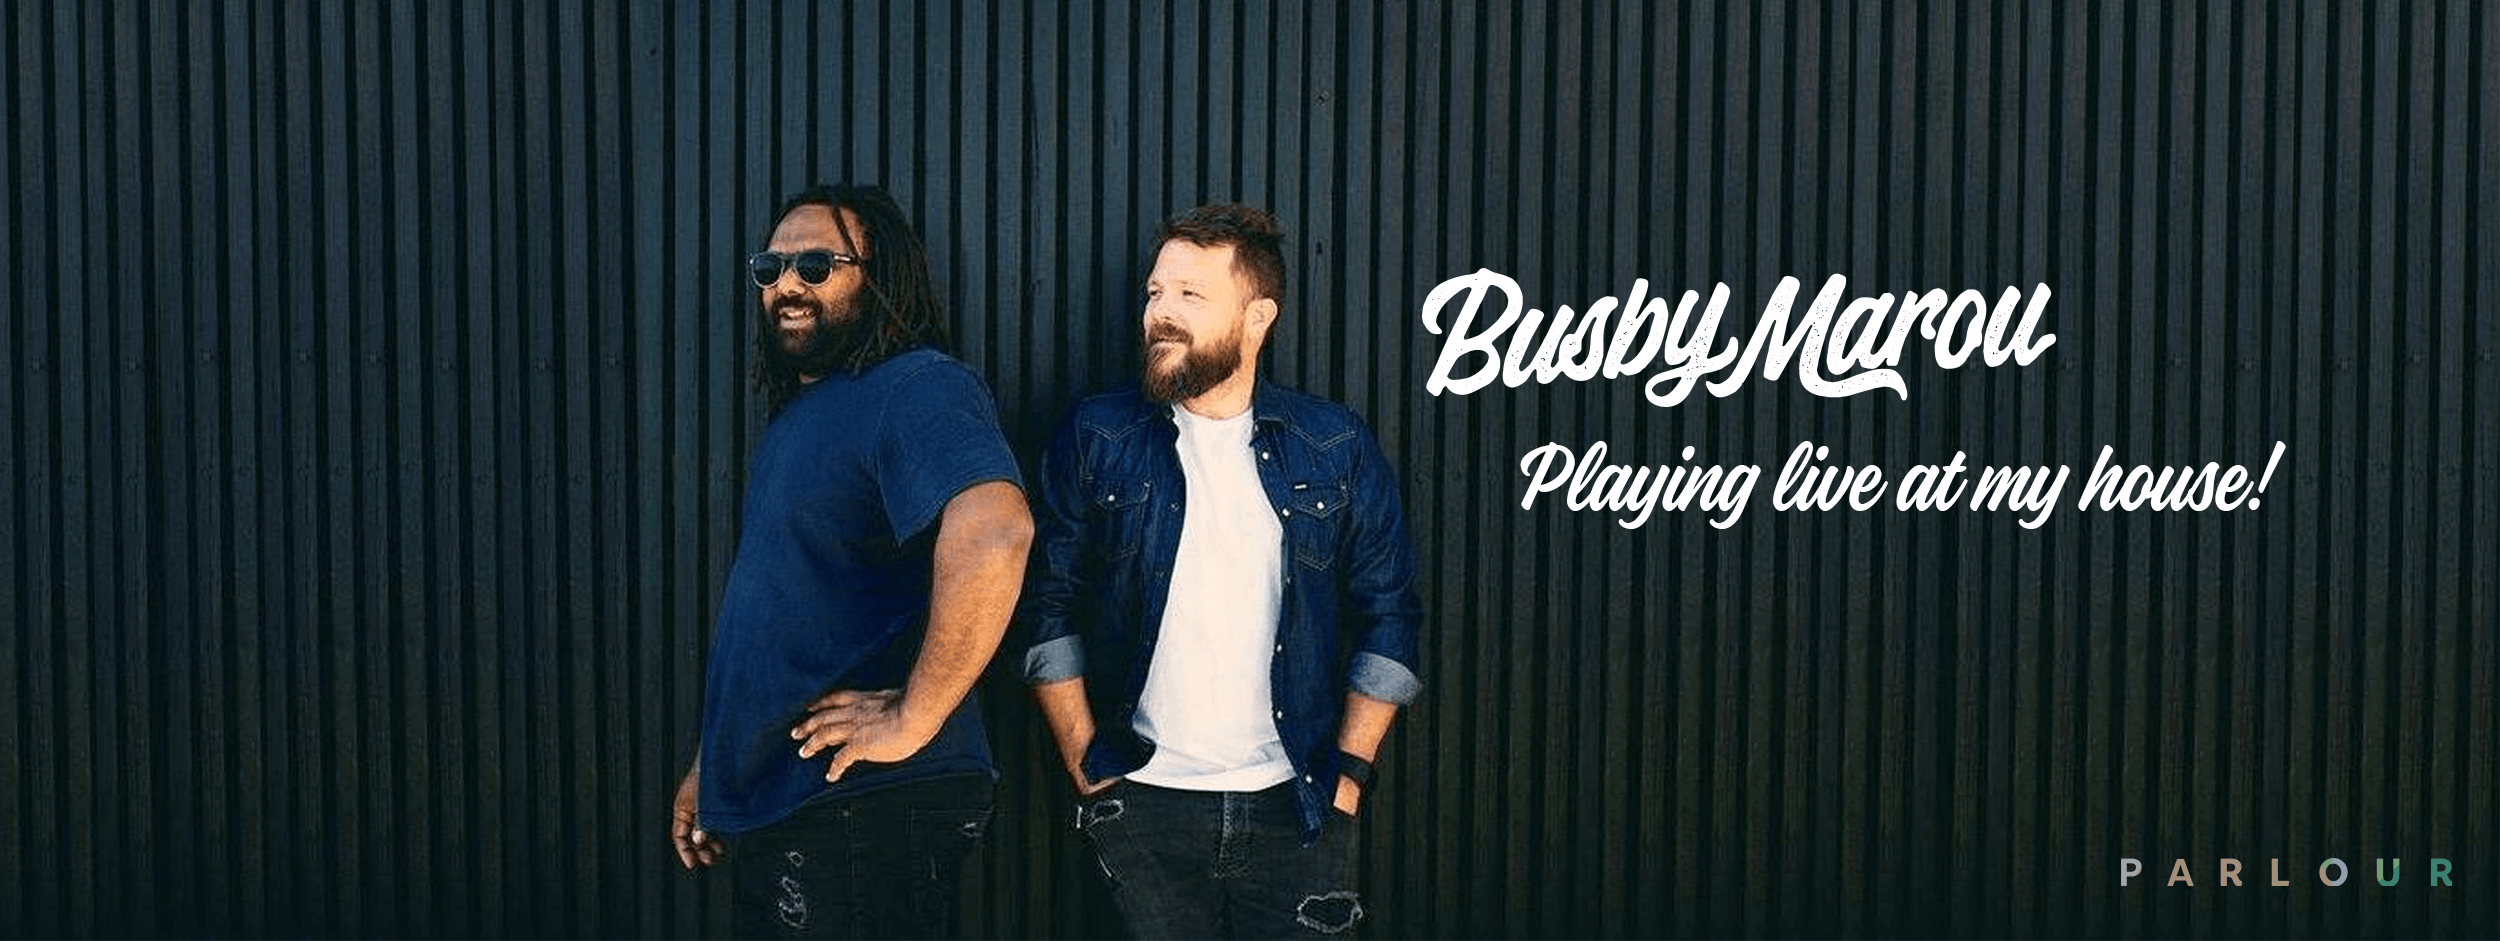 Busby Marou Host Banner.png